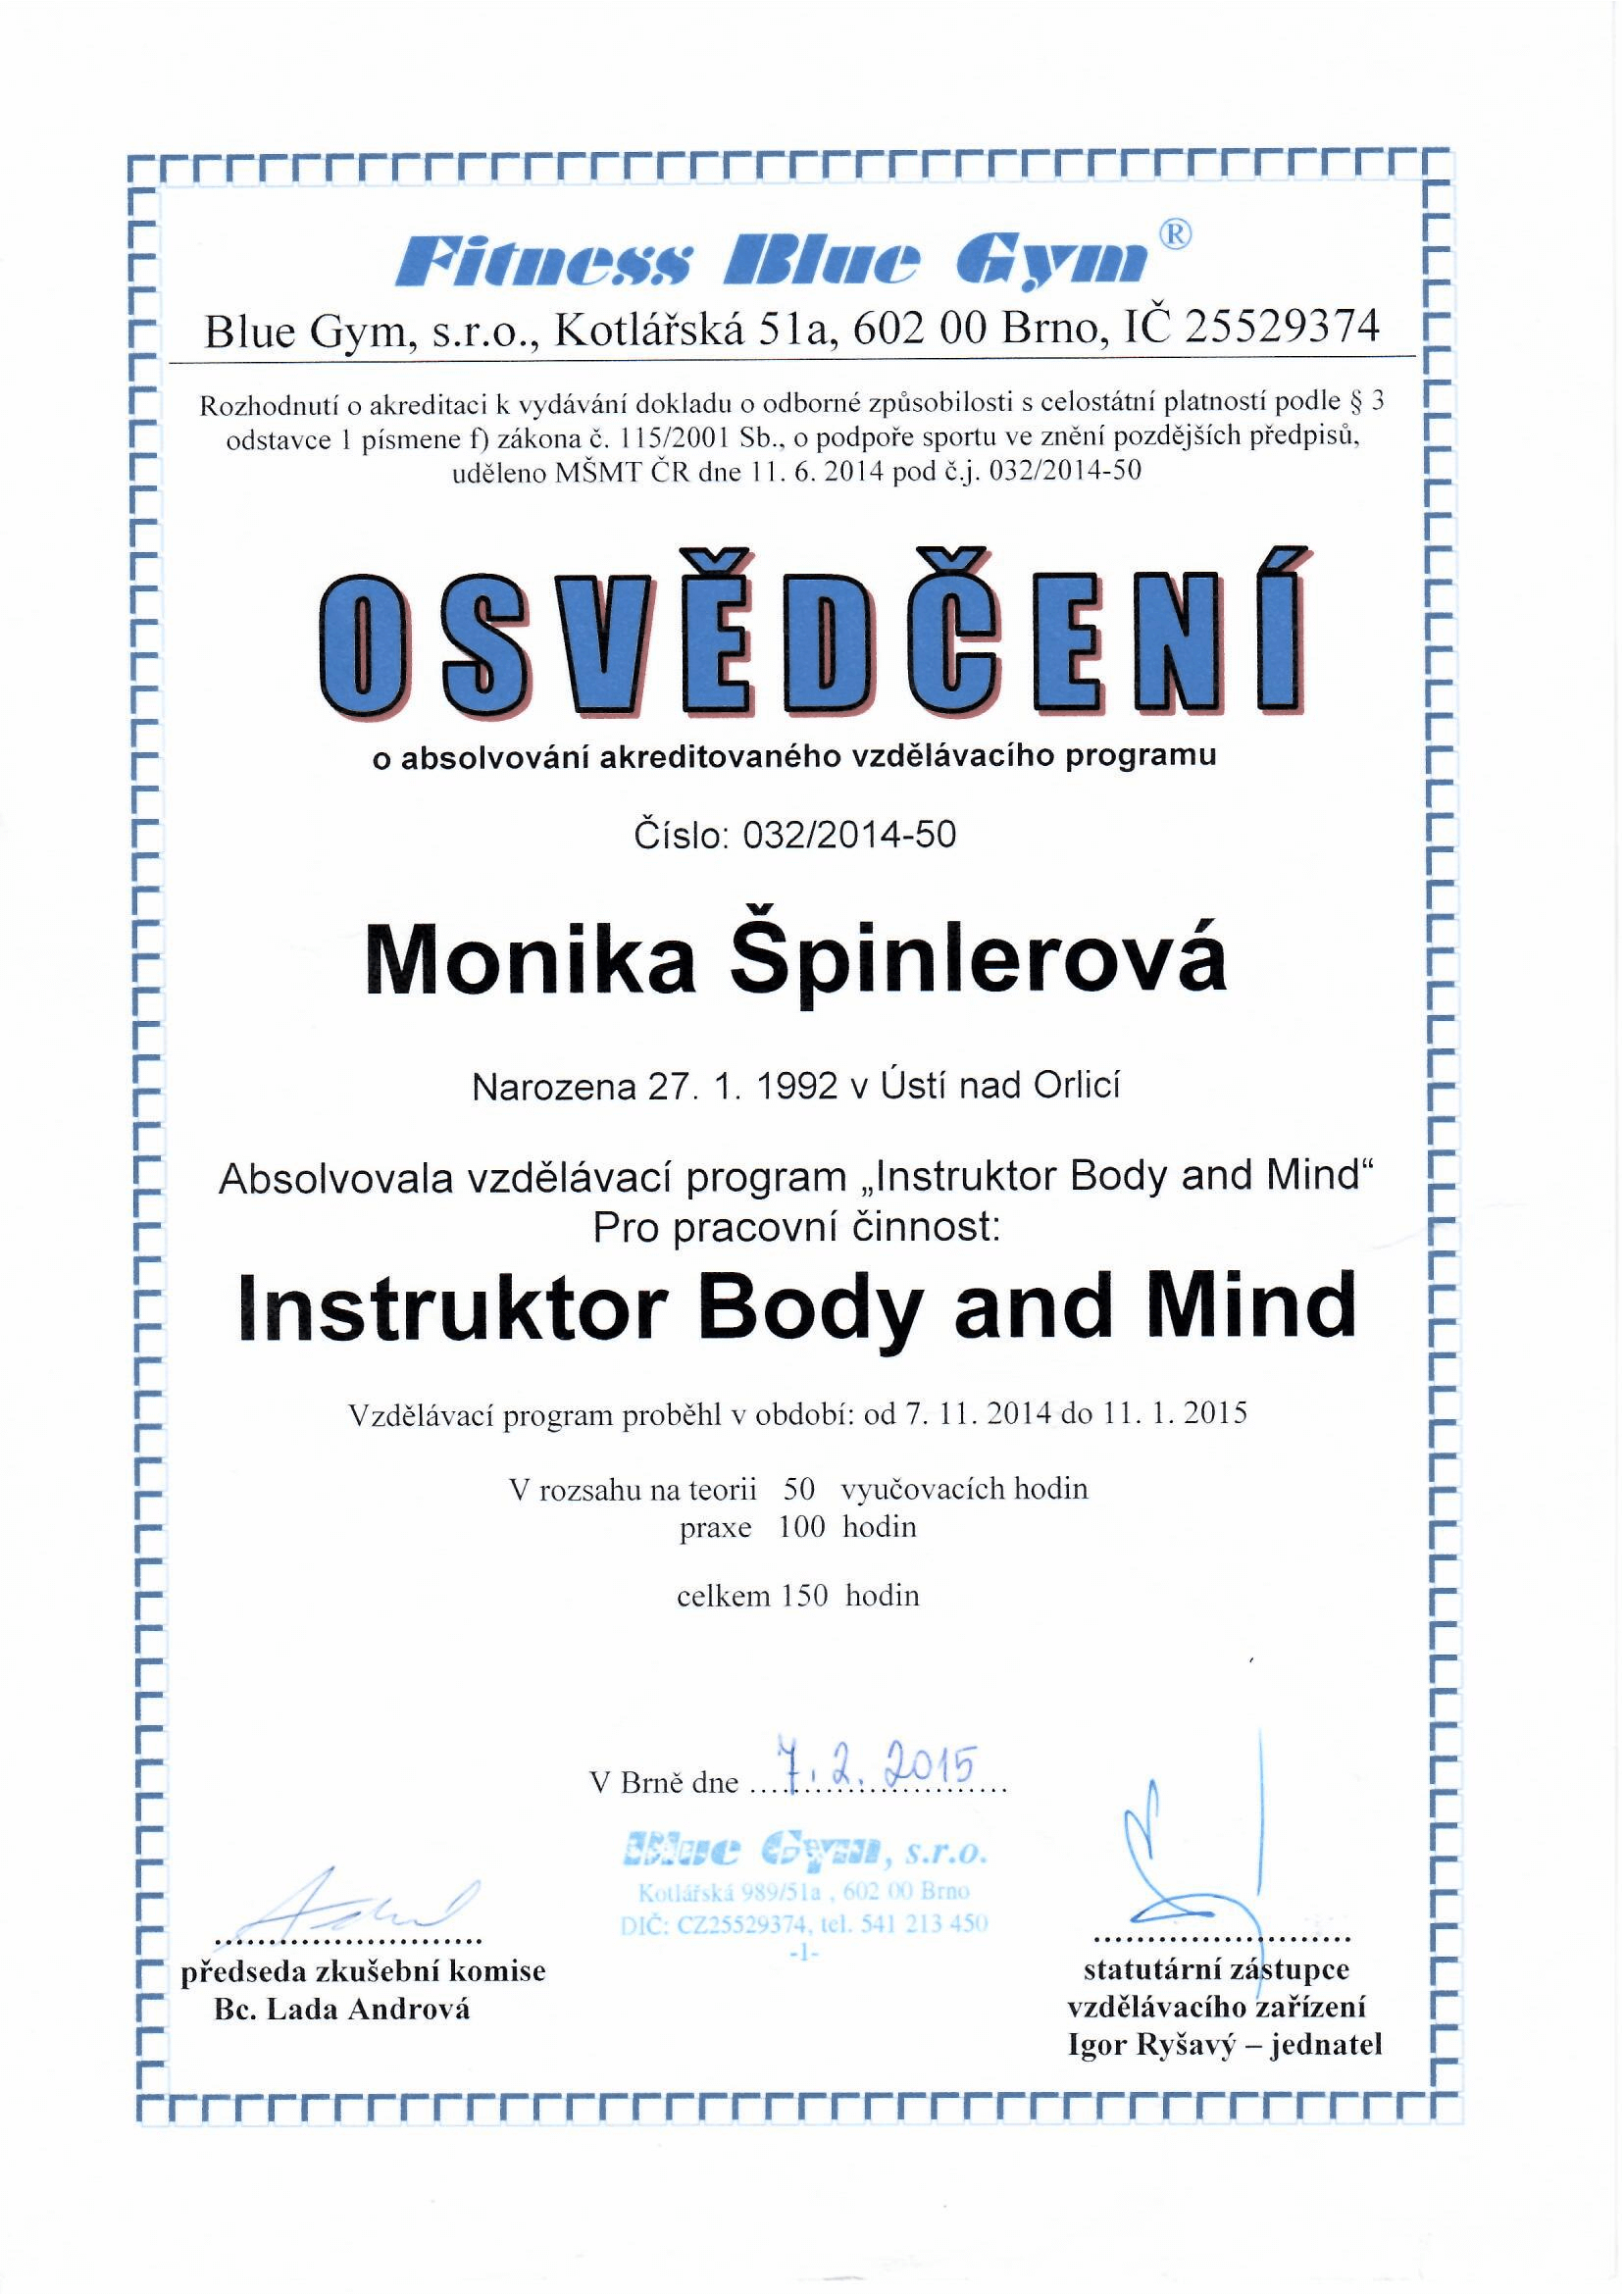 Blue Gym - Instruktor Body and Mind